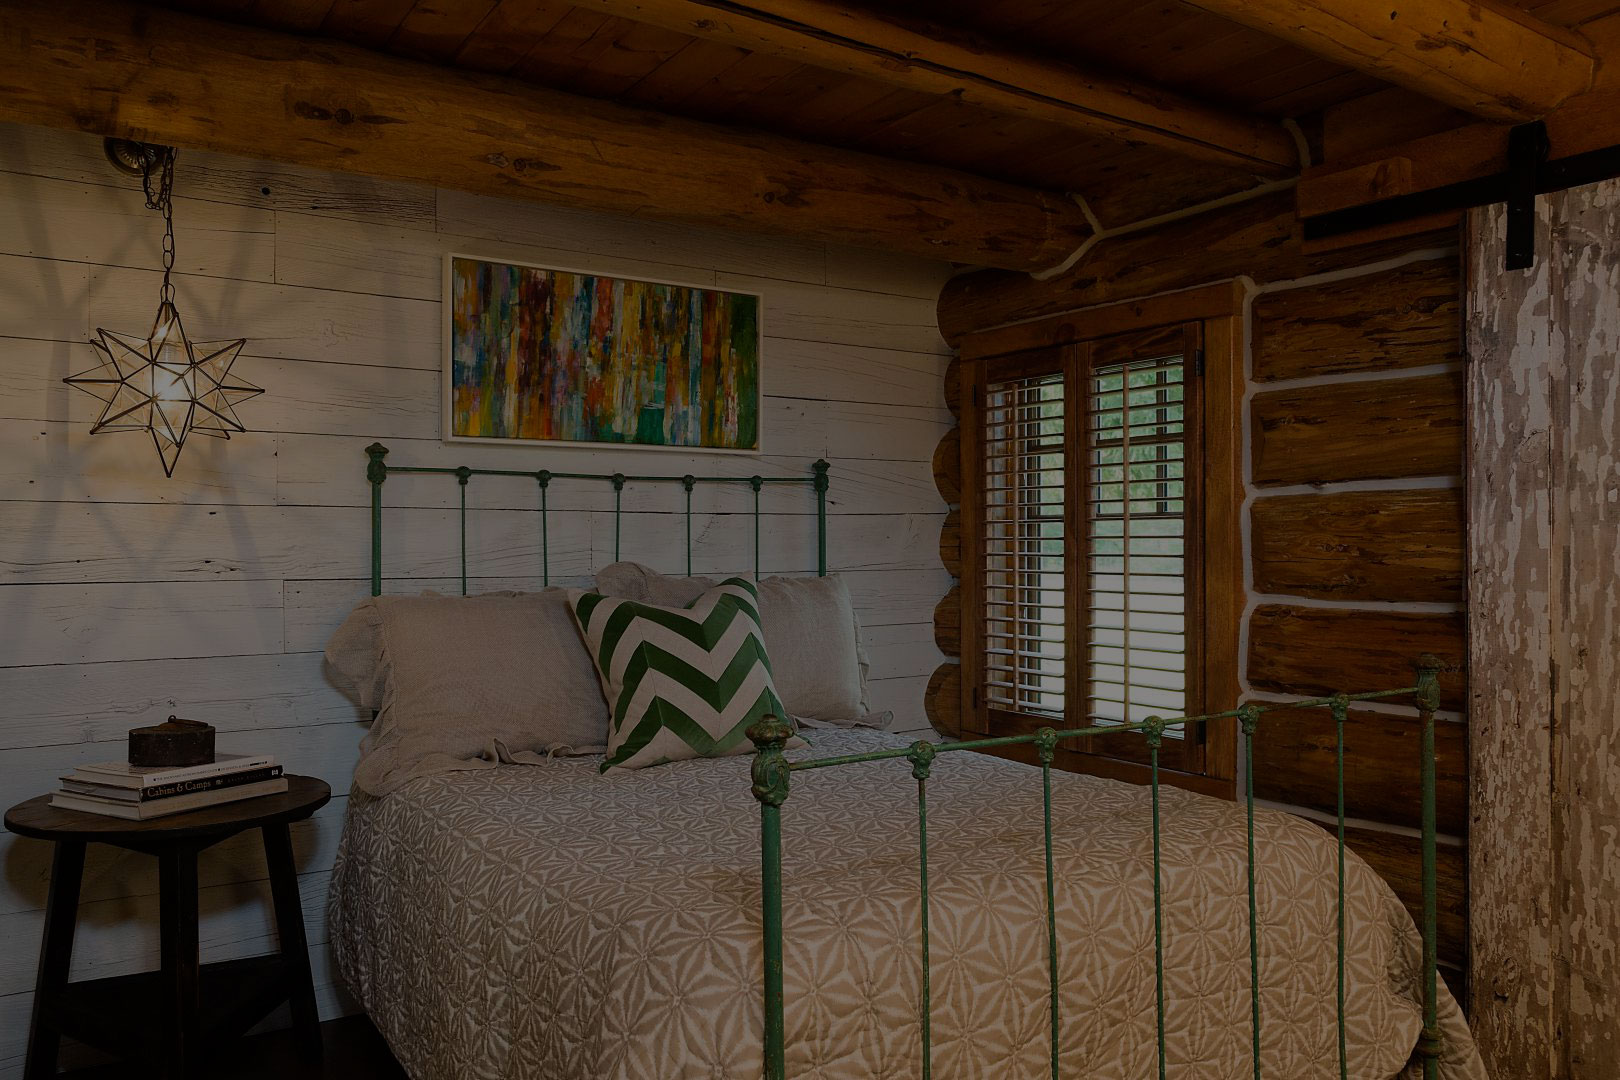 A beautiful cabin interior built with vintage reclaimed lumber.